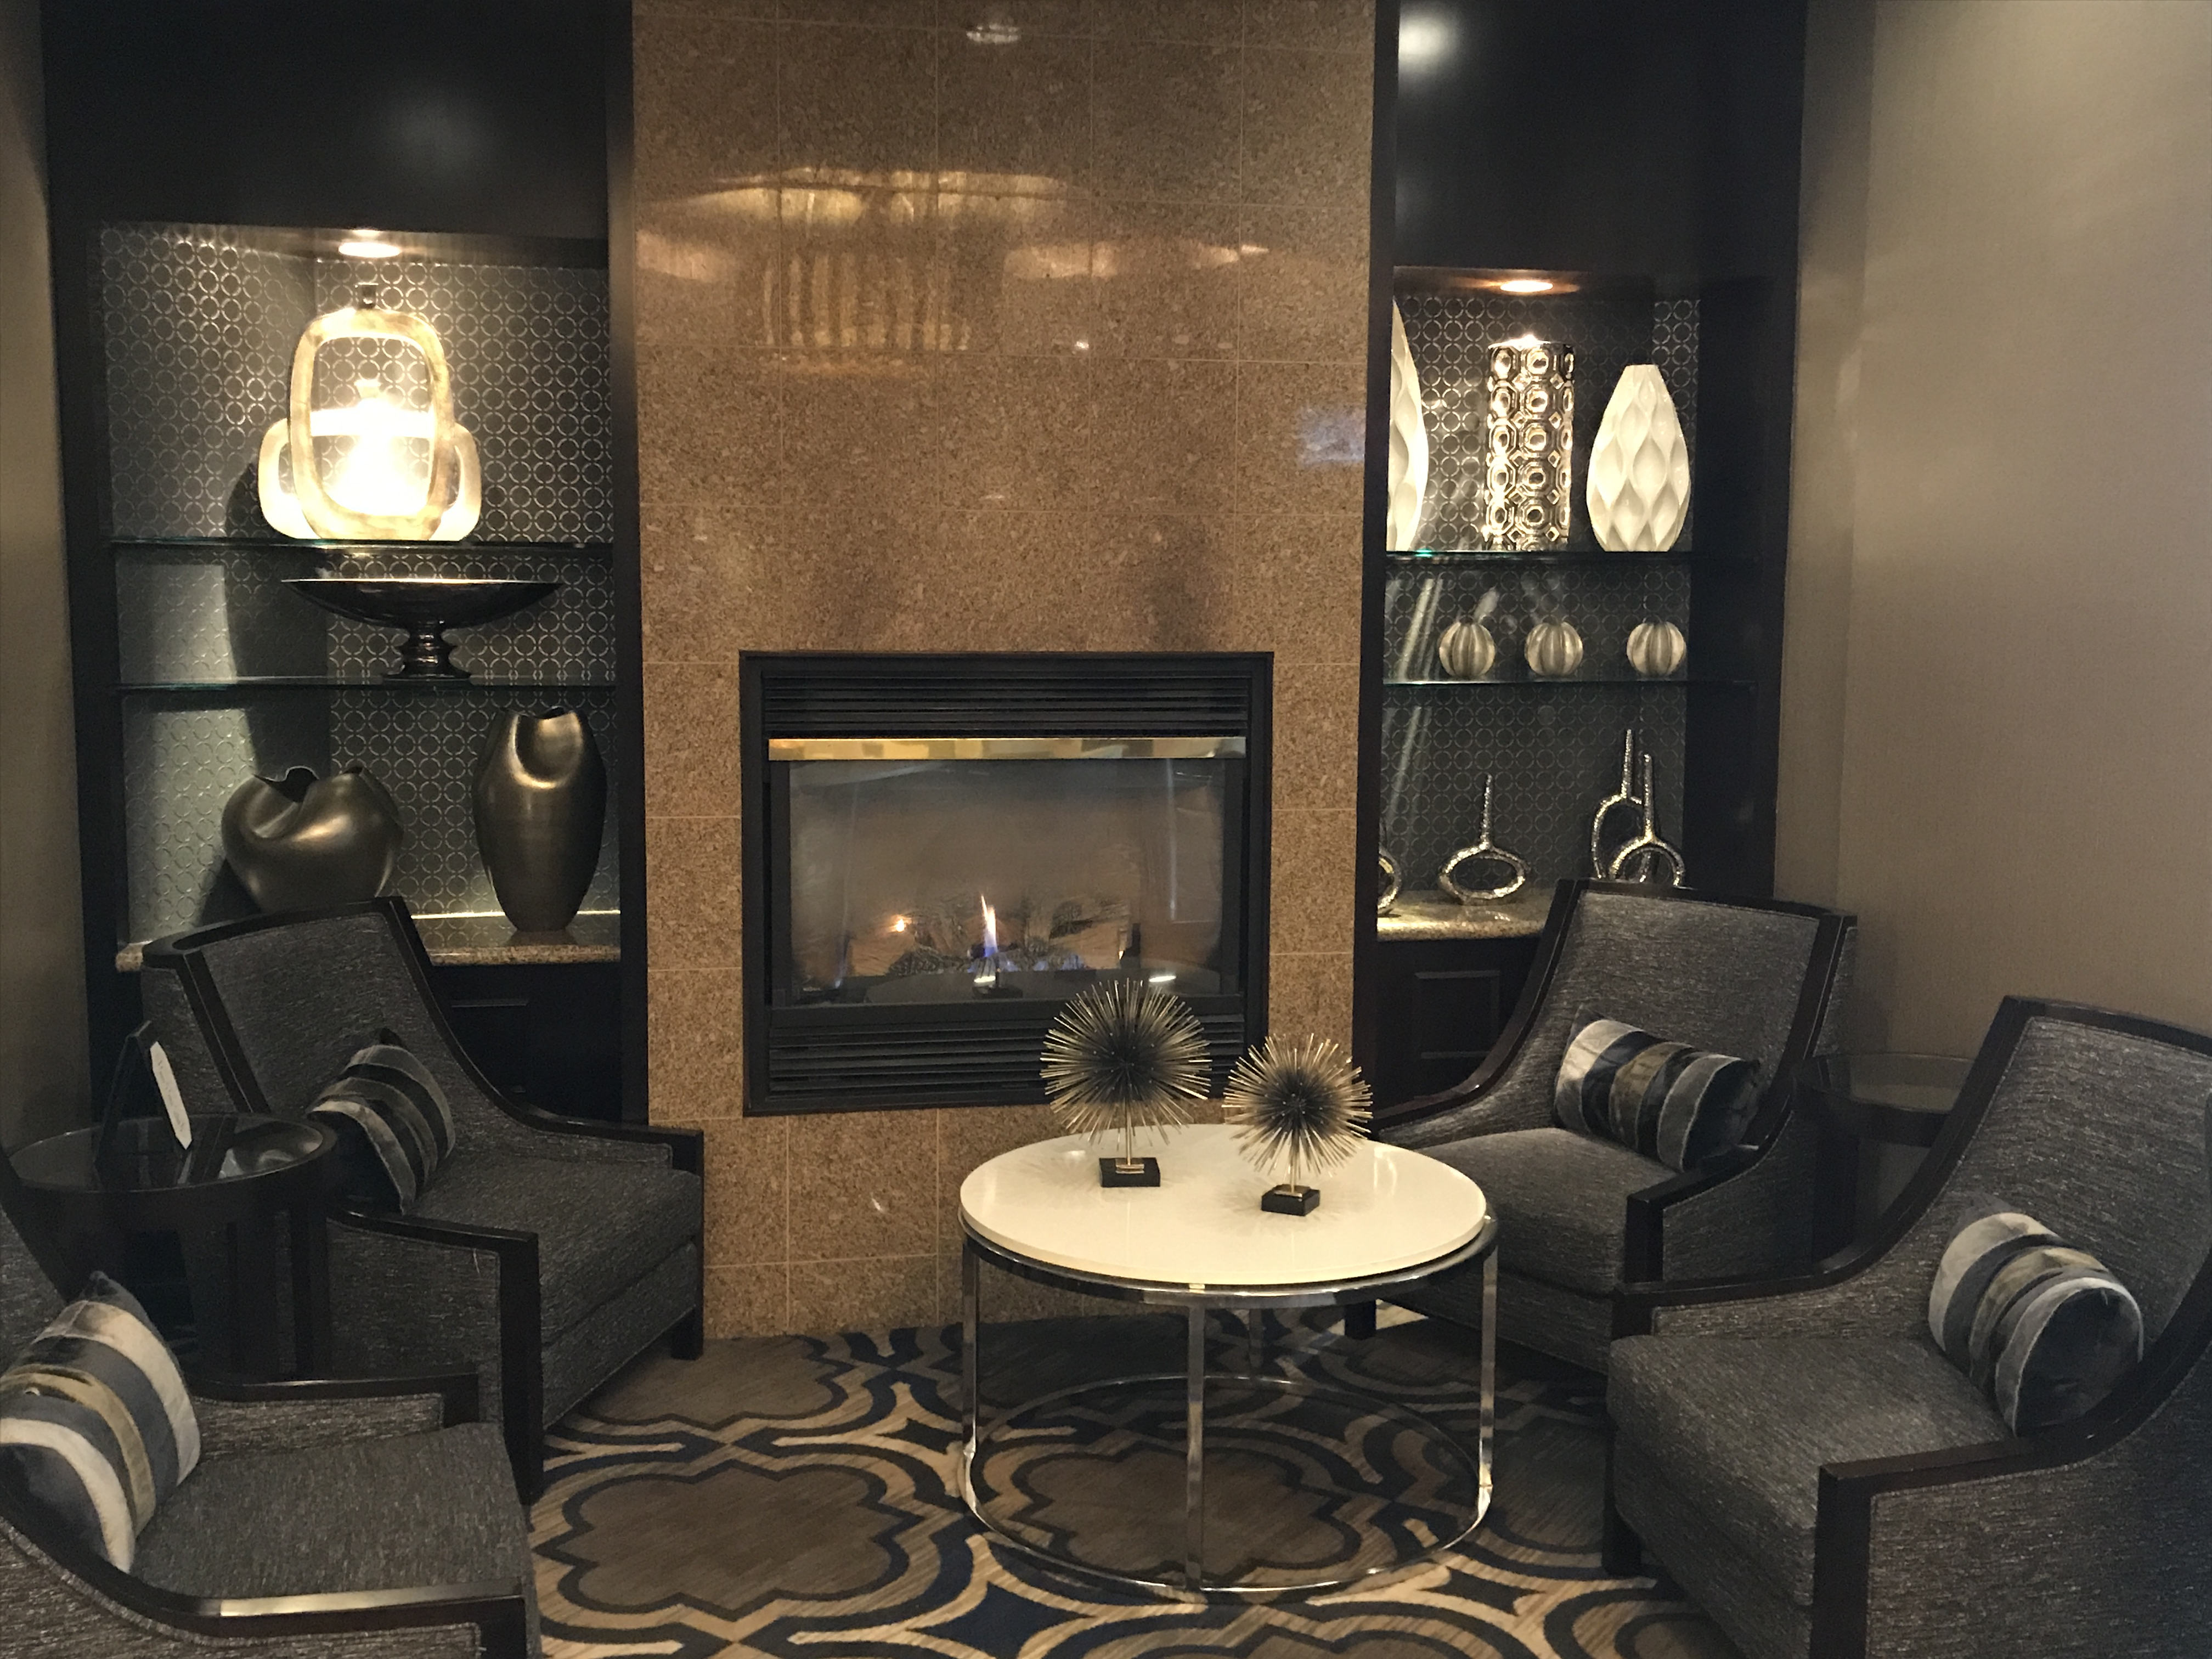 Annapolis Crowne Plaza guest sitting area by a fireplace